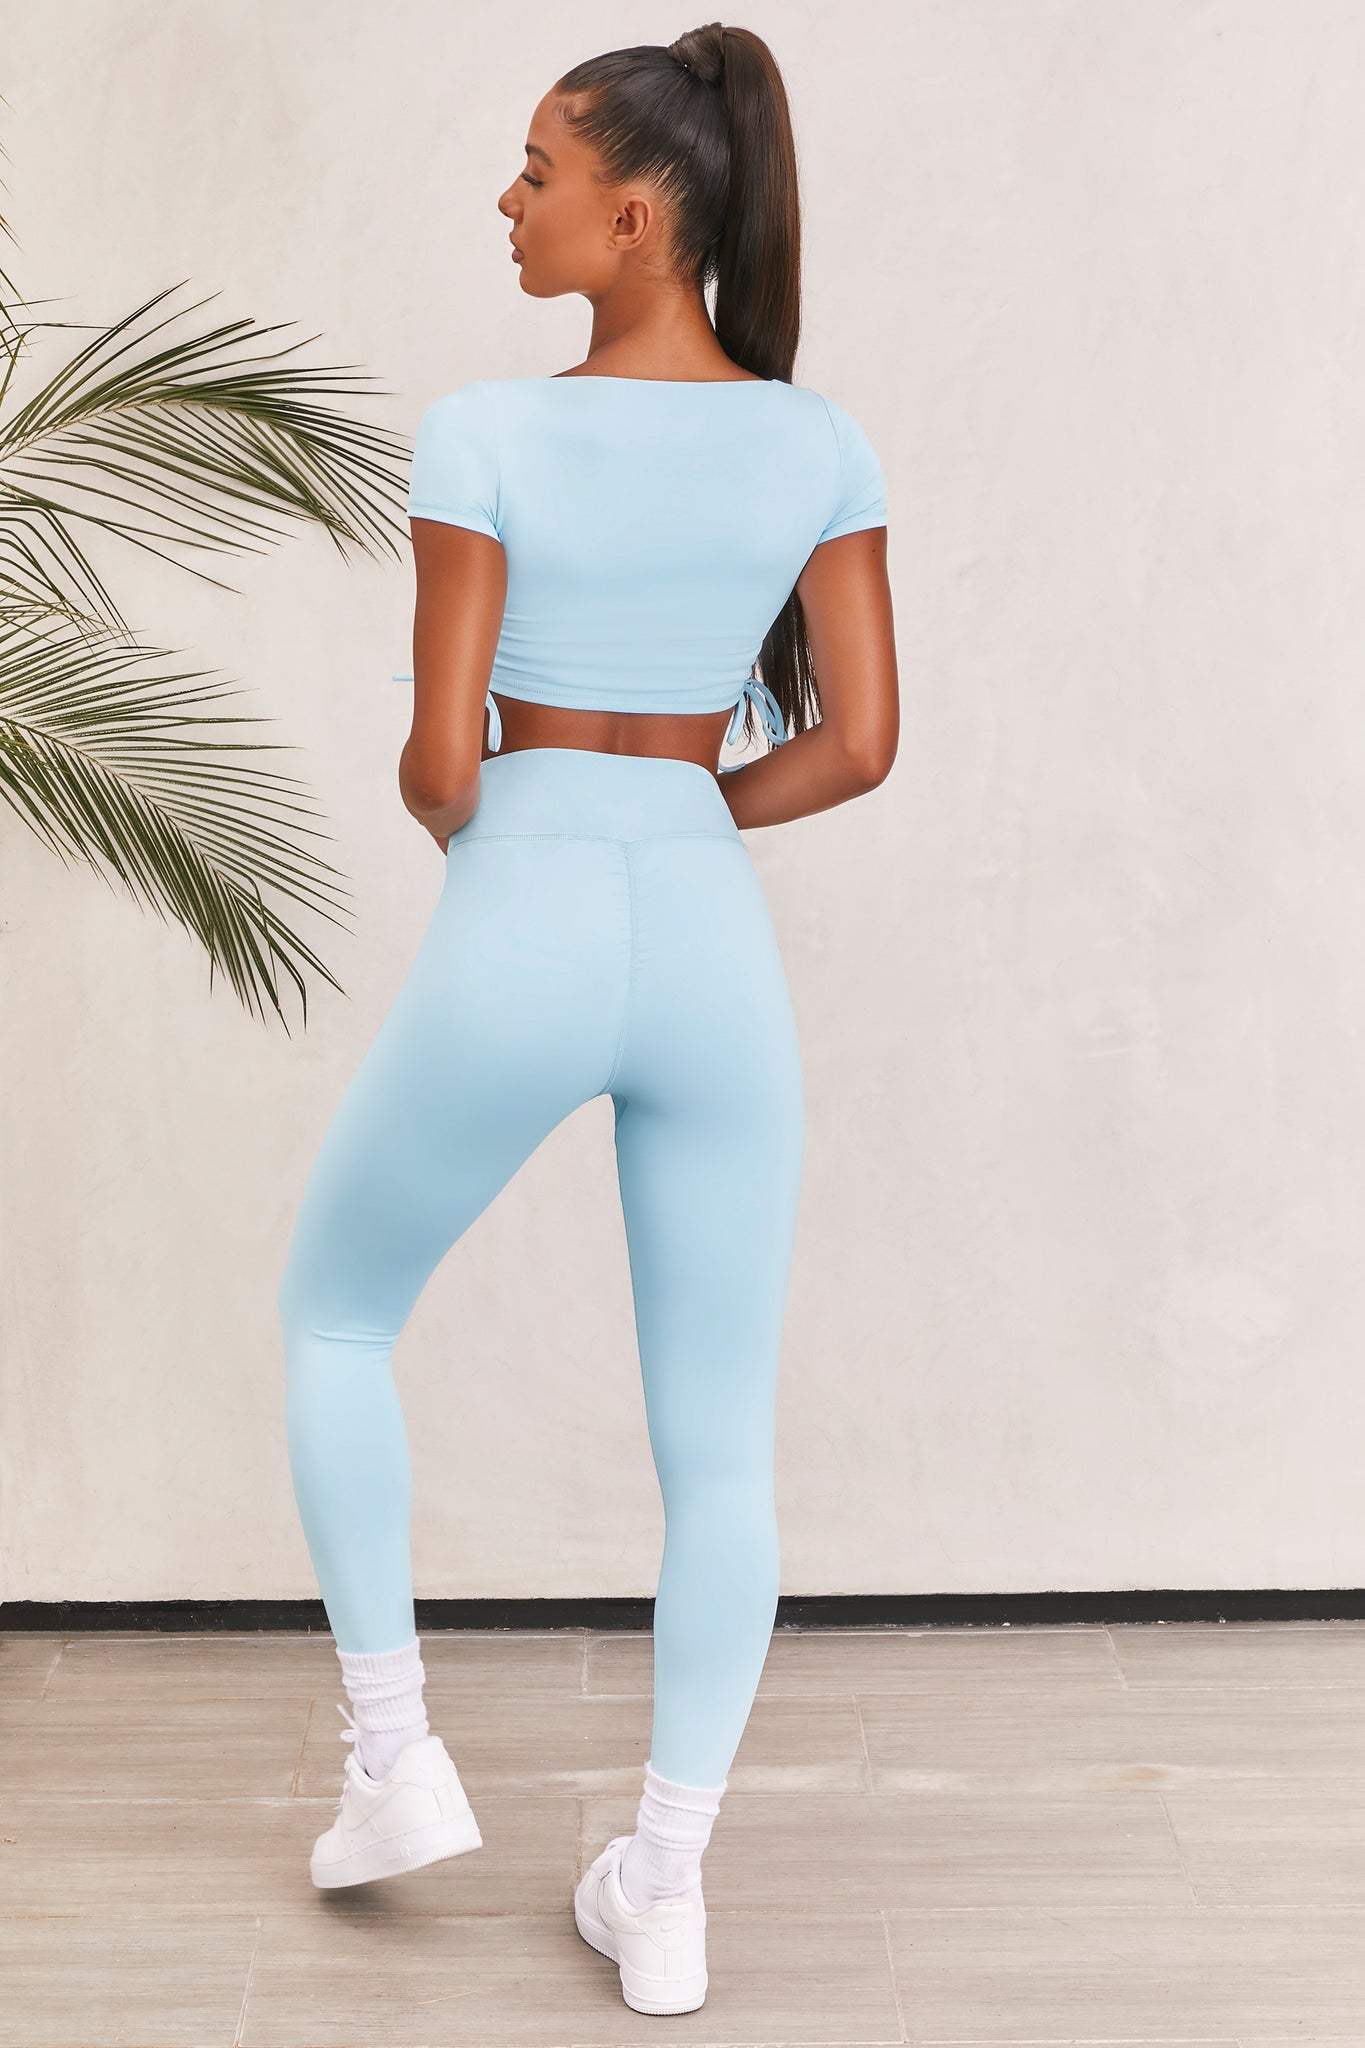 Plain ice blue petite slinky high waisted full length gym leggings with rear ruched seam. Image 3 of 6.